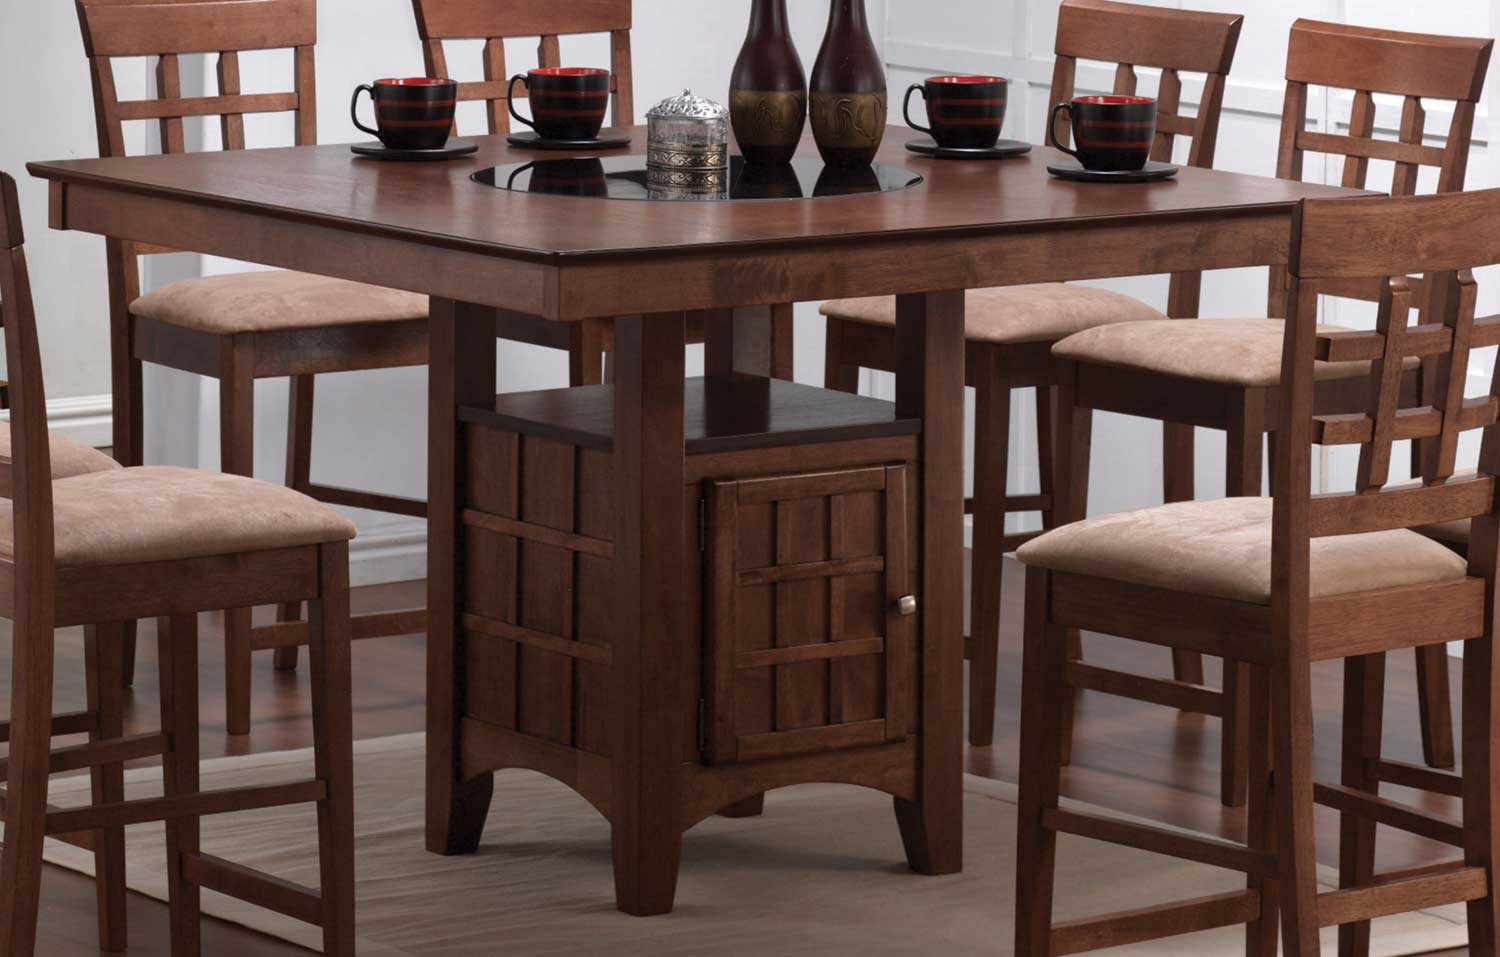 Coaster Mix and Match Counter Height Dining Table with  : CO 101438 from www.homelement.com size 1500 x 957 jpeg 93kB